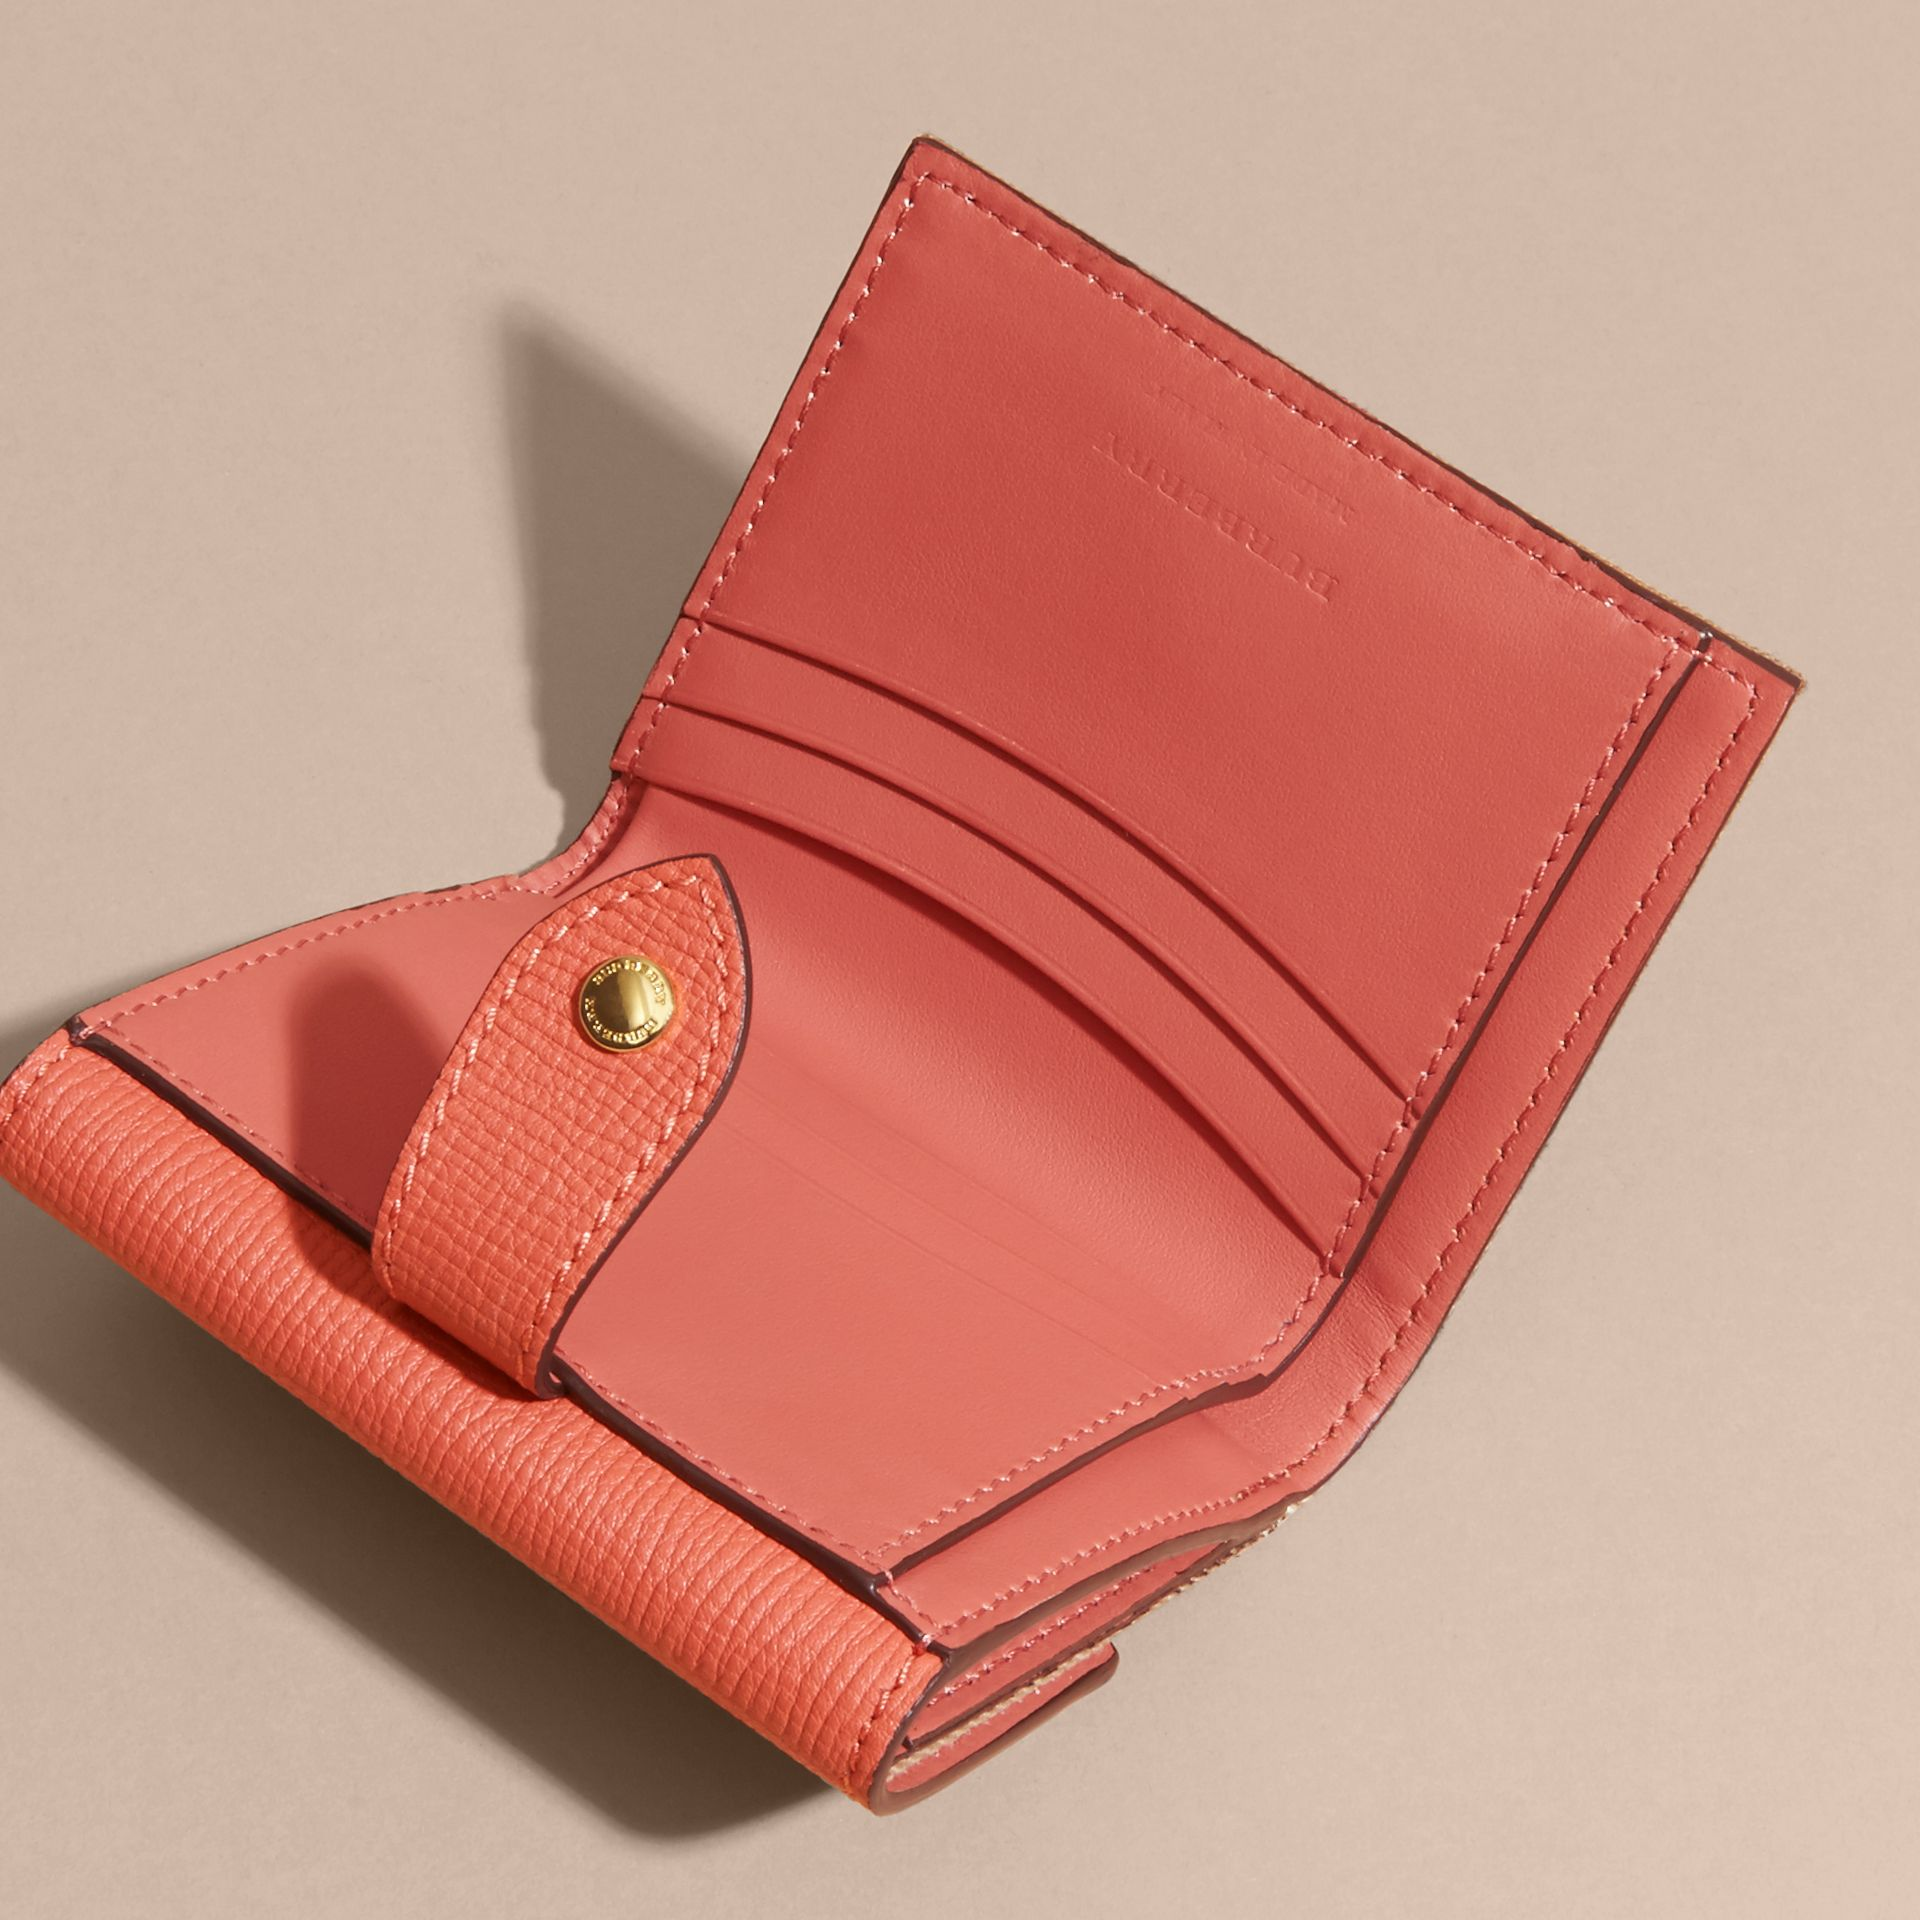 House Check and Leather Wallet in Cinnamon Red - Women | Burberry - gallery image 6